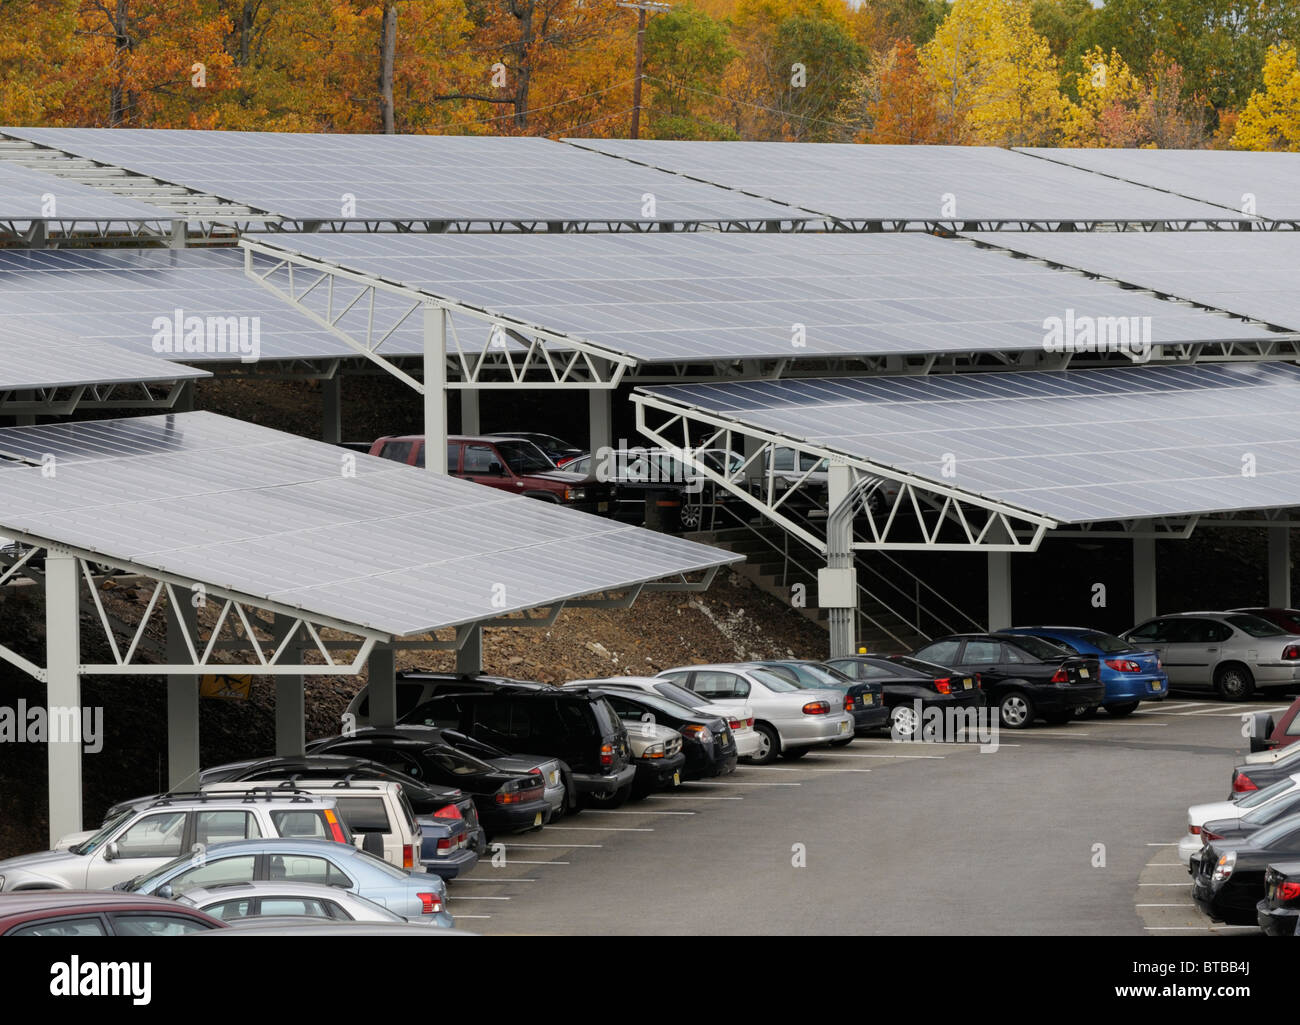 Solar energy array at a university parking lot, William Paterson University, NJ - Stock Image